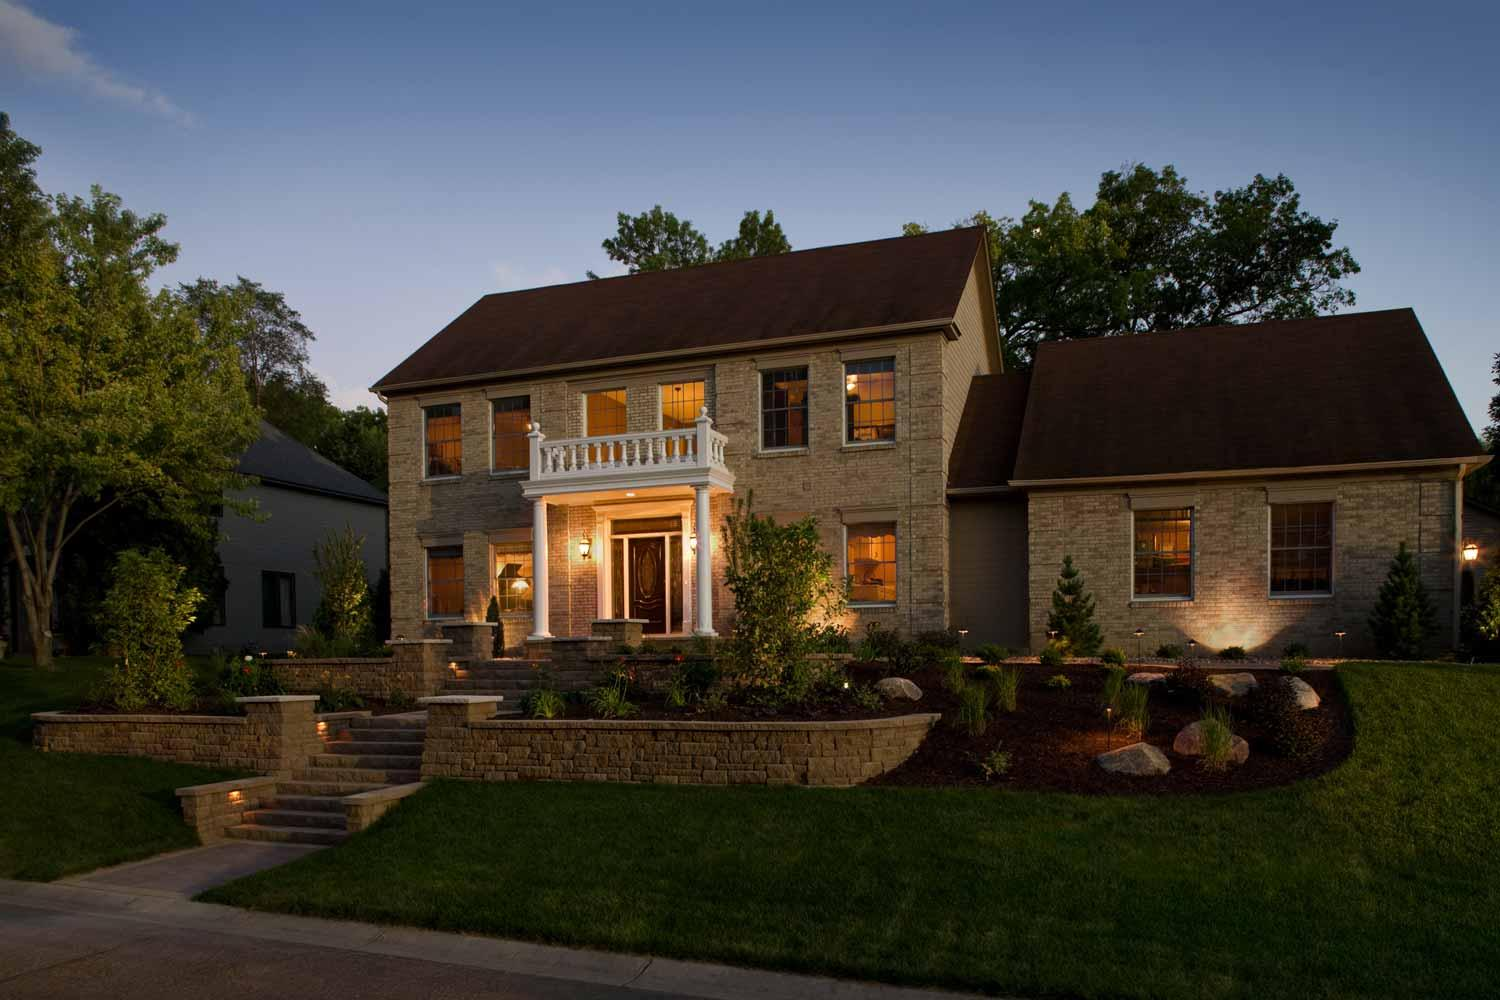 Night lighting highlights landscape and architectural elements of this formal front yard landscape design.